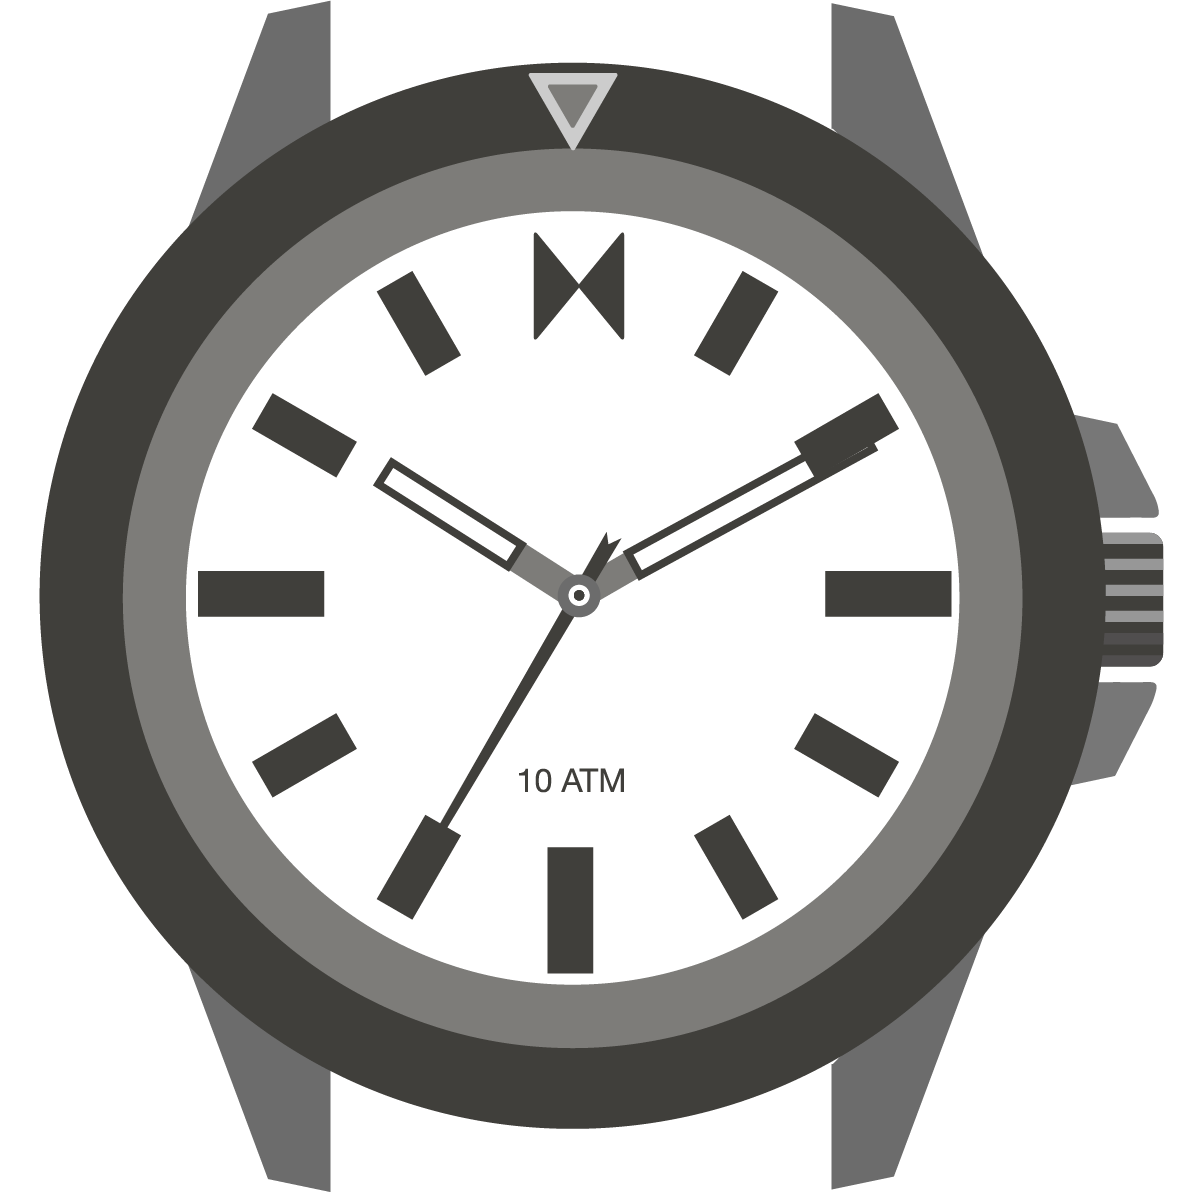 Minimal Sport watch illustration